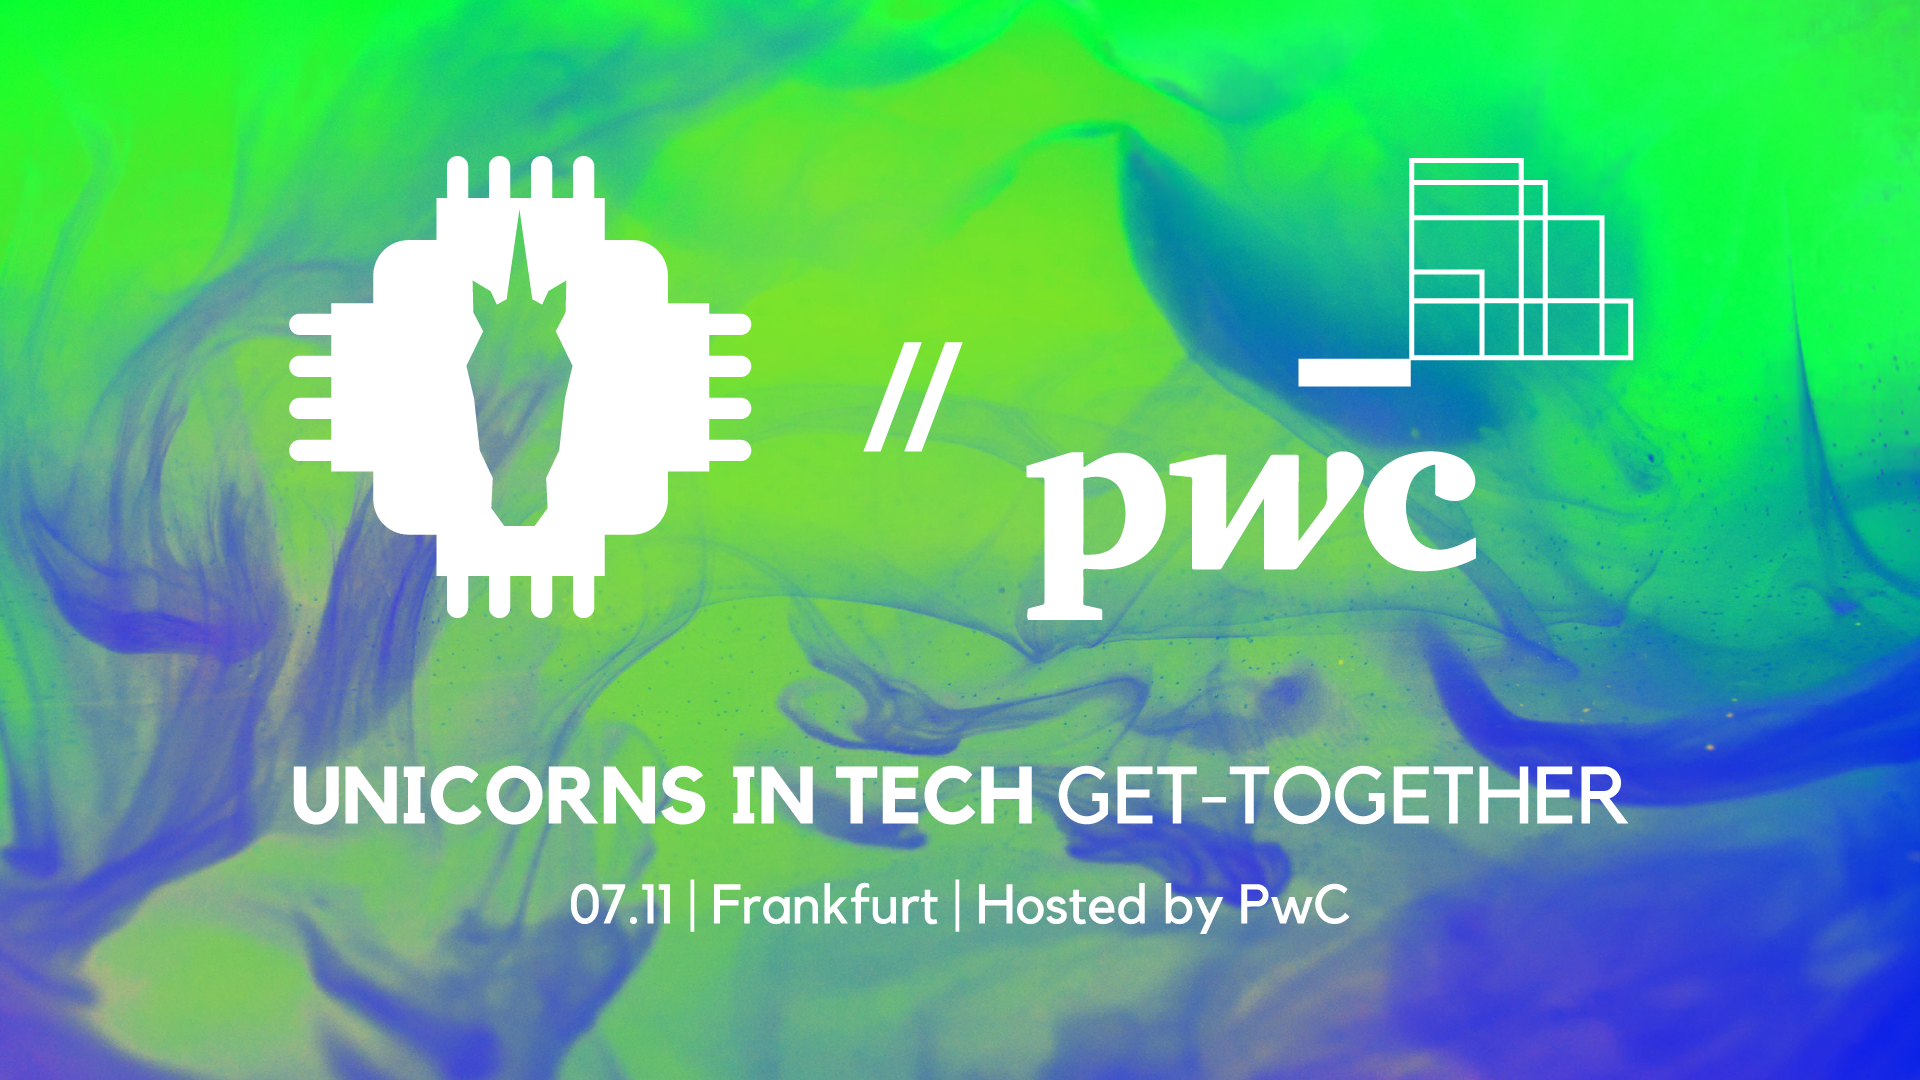 Get-Together @ PwC   Unicorns in Tech